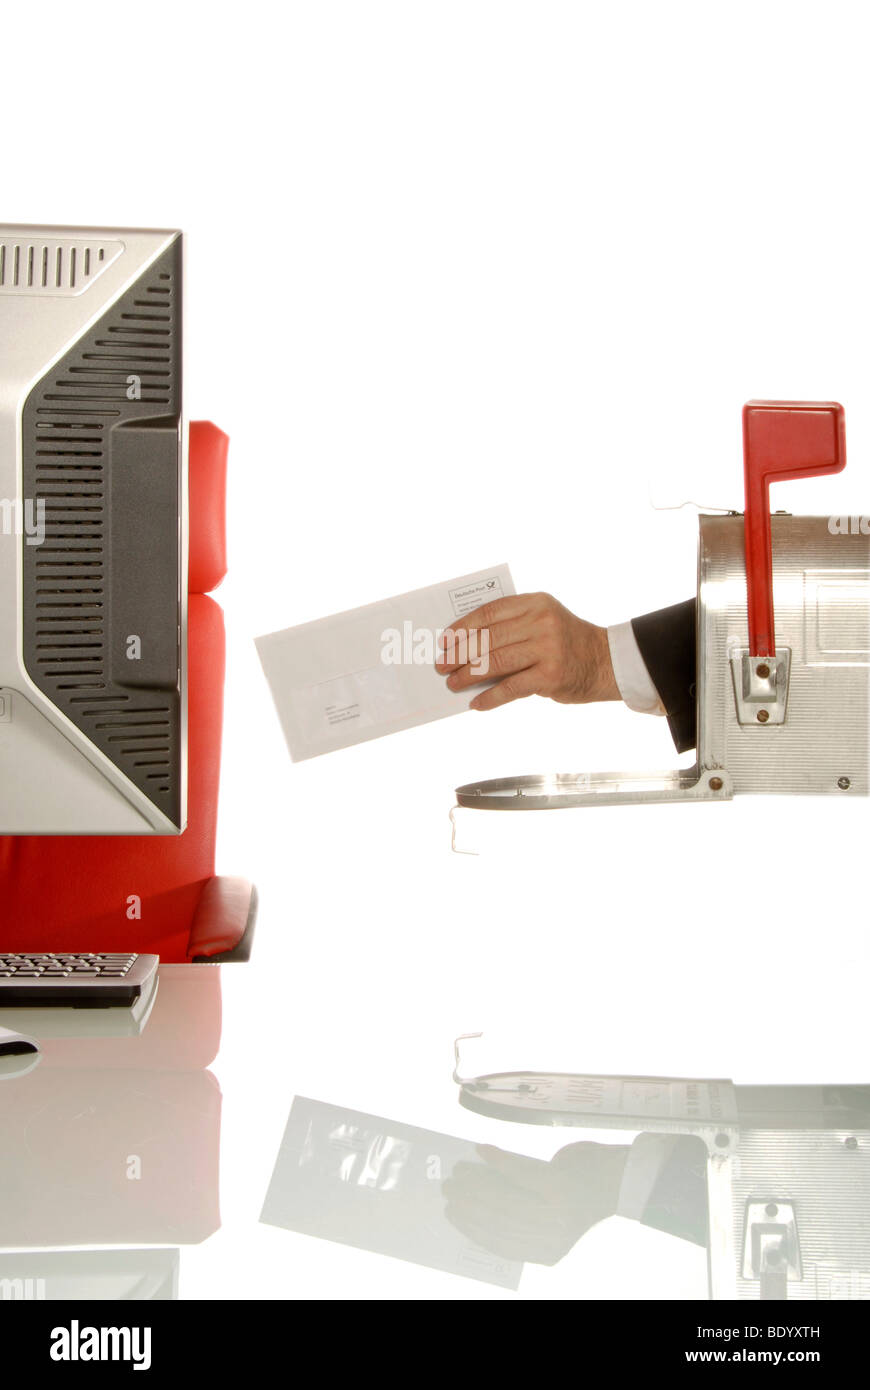 Hand holding a letter coming out of a U.S. mailbox and passing it towards a computer work station - Stock Image